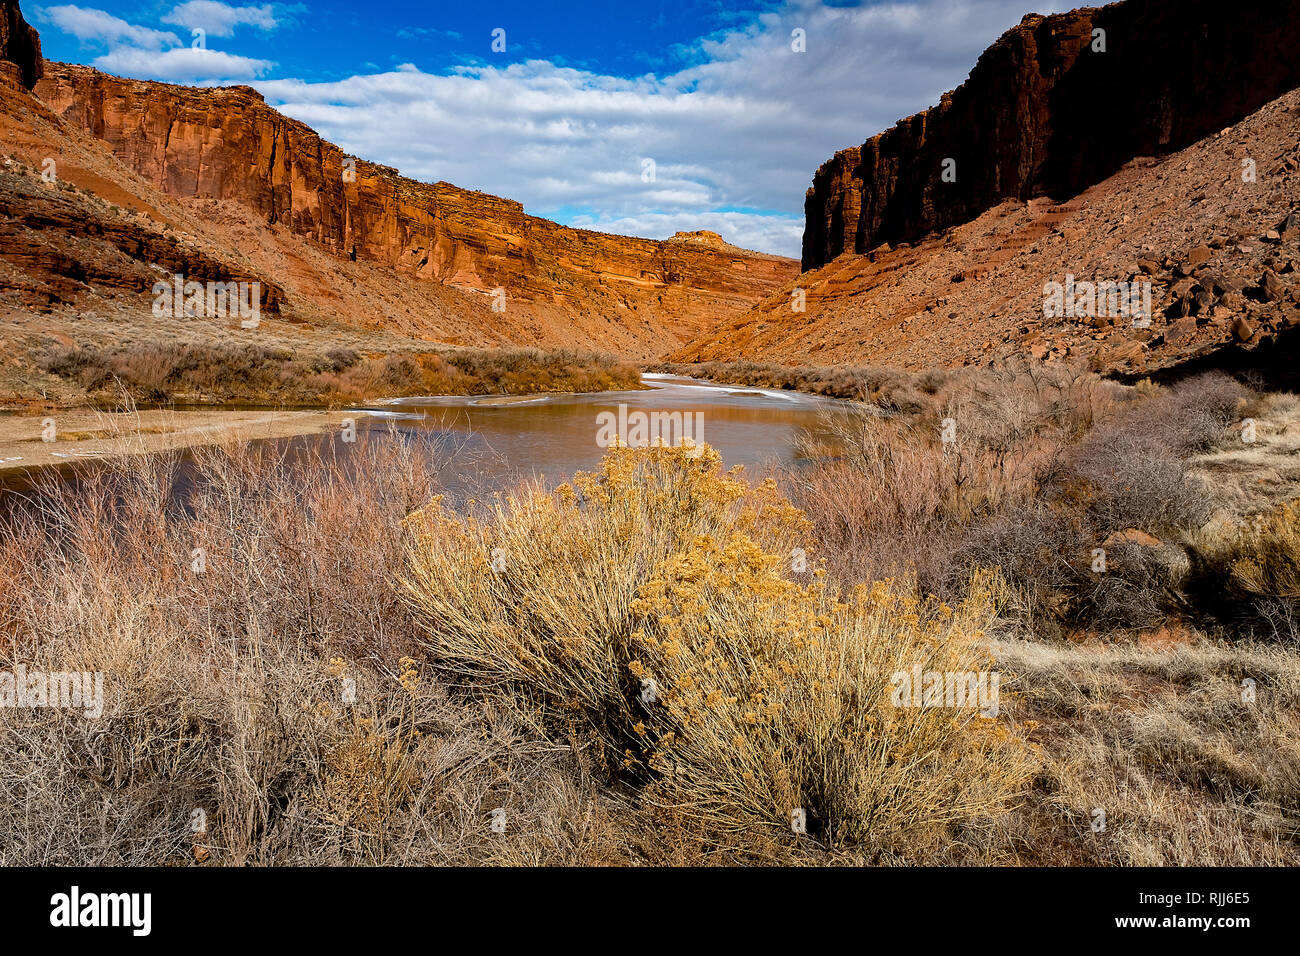 January 2019: The Colorado River winds its way along Utah Highway128 and provides a scenic drive into the red sandstone canyons near Moab, Utah. - Stock Image